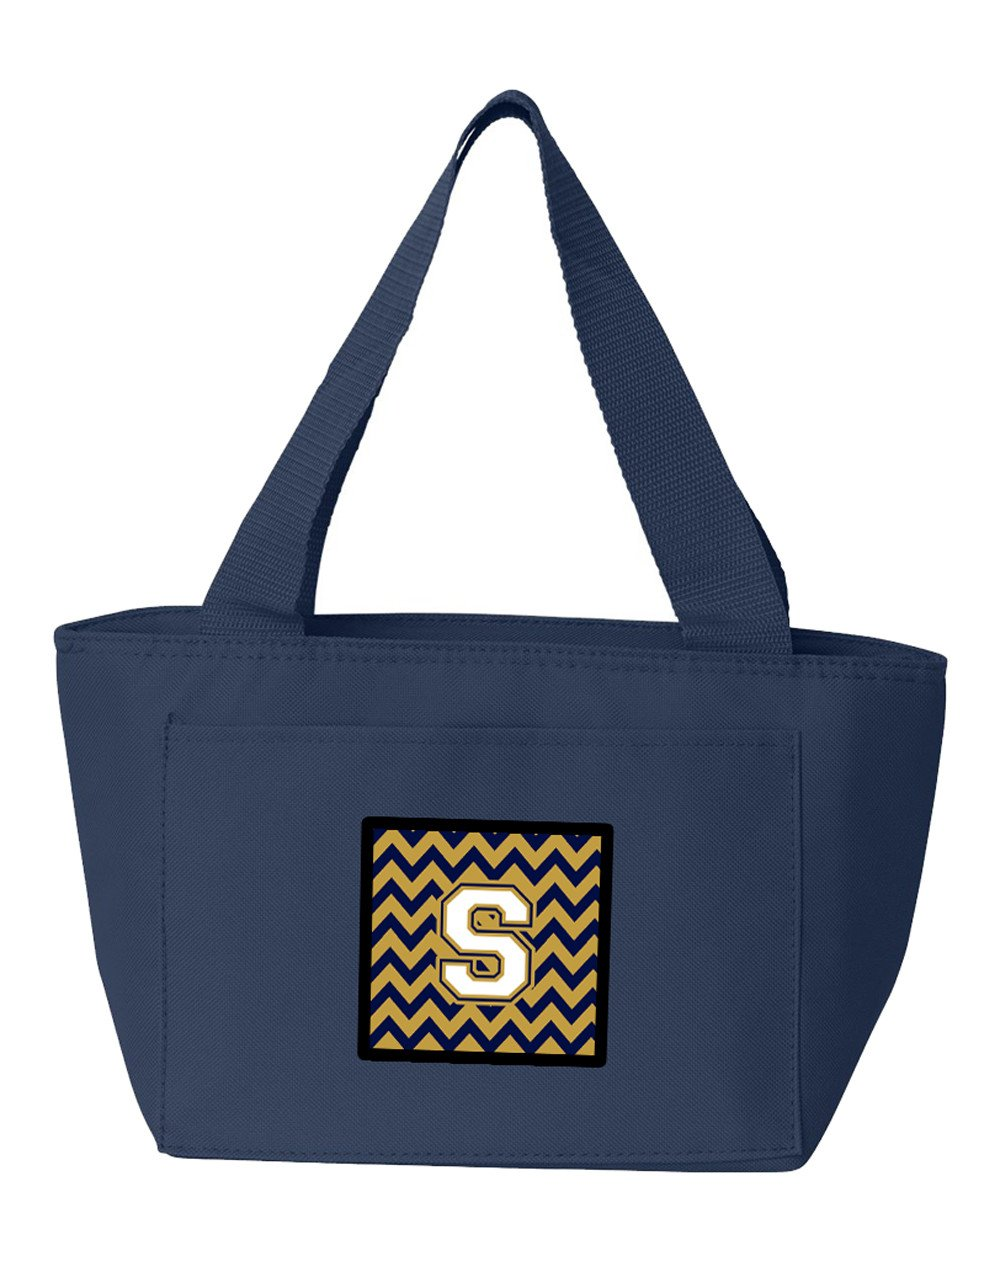 Letter S Chevron Navy Blue and Gold Lunch Bag CJ1057-SNA-8808 by Caroline's Treasures